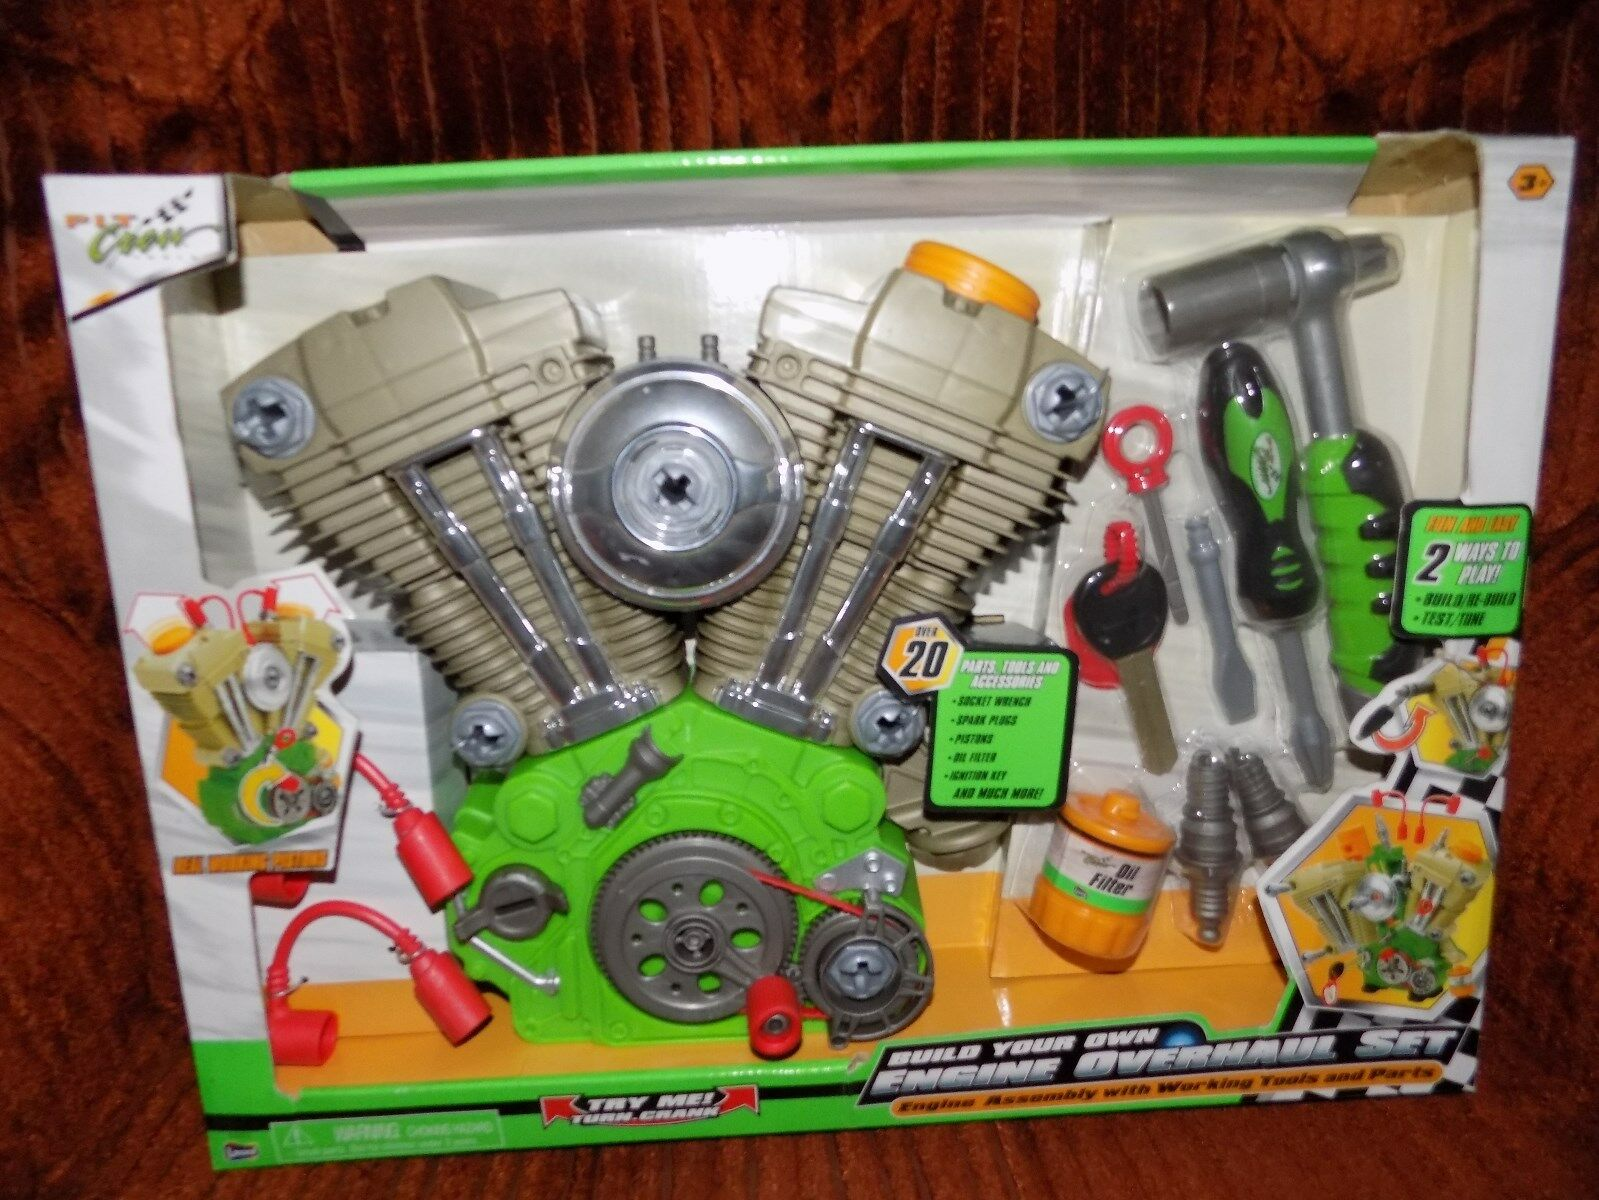 BUILD YOUR OWN ENGINE OVERHAUL SET, PIT CREW TOOLS, ASSEMBLY, NEWINBOX